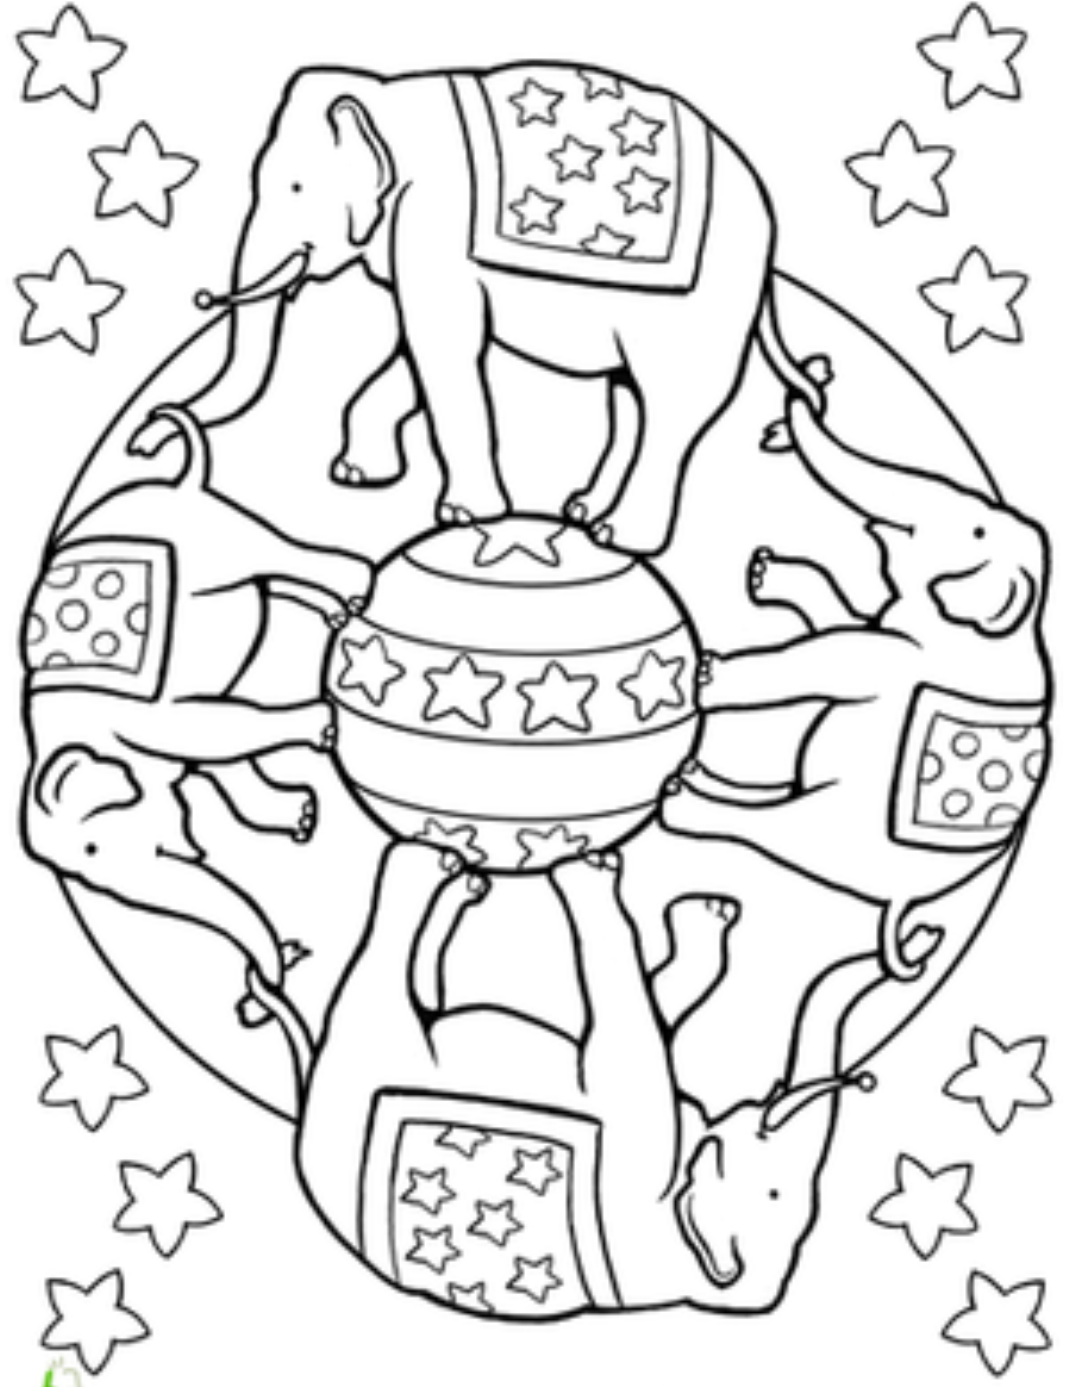 Free Printable Elephant Circus Coloring Pages | DIY - Kids Crafts ...